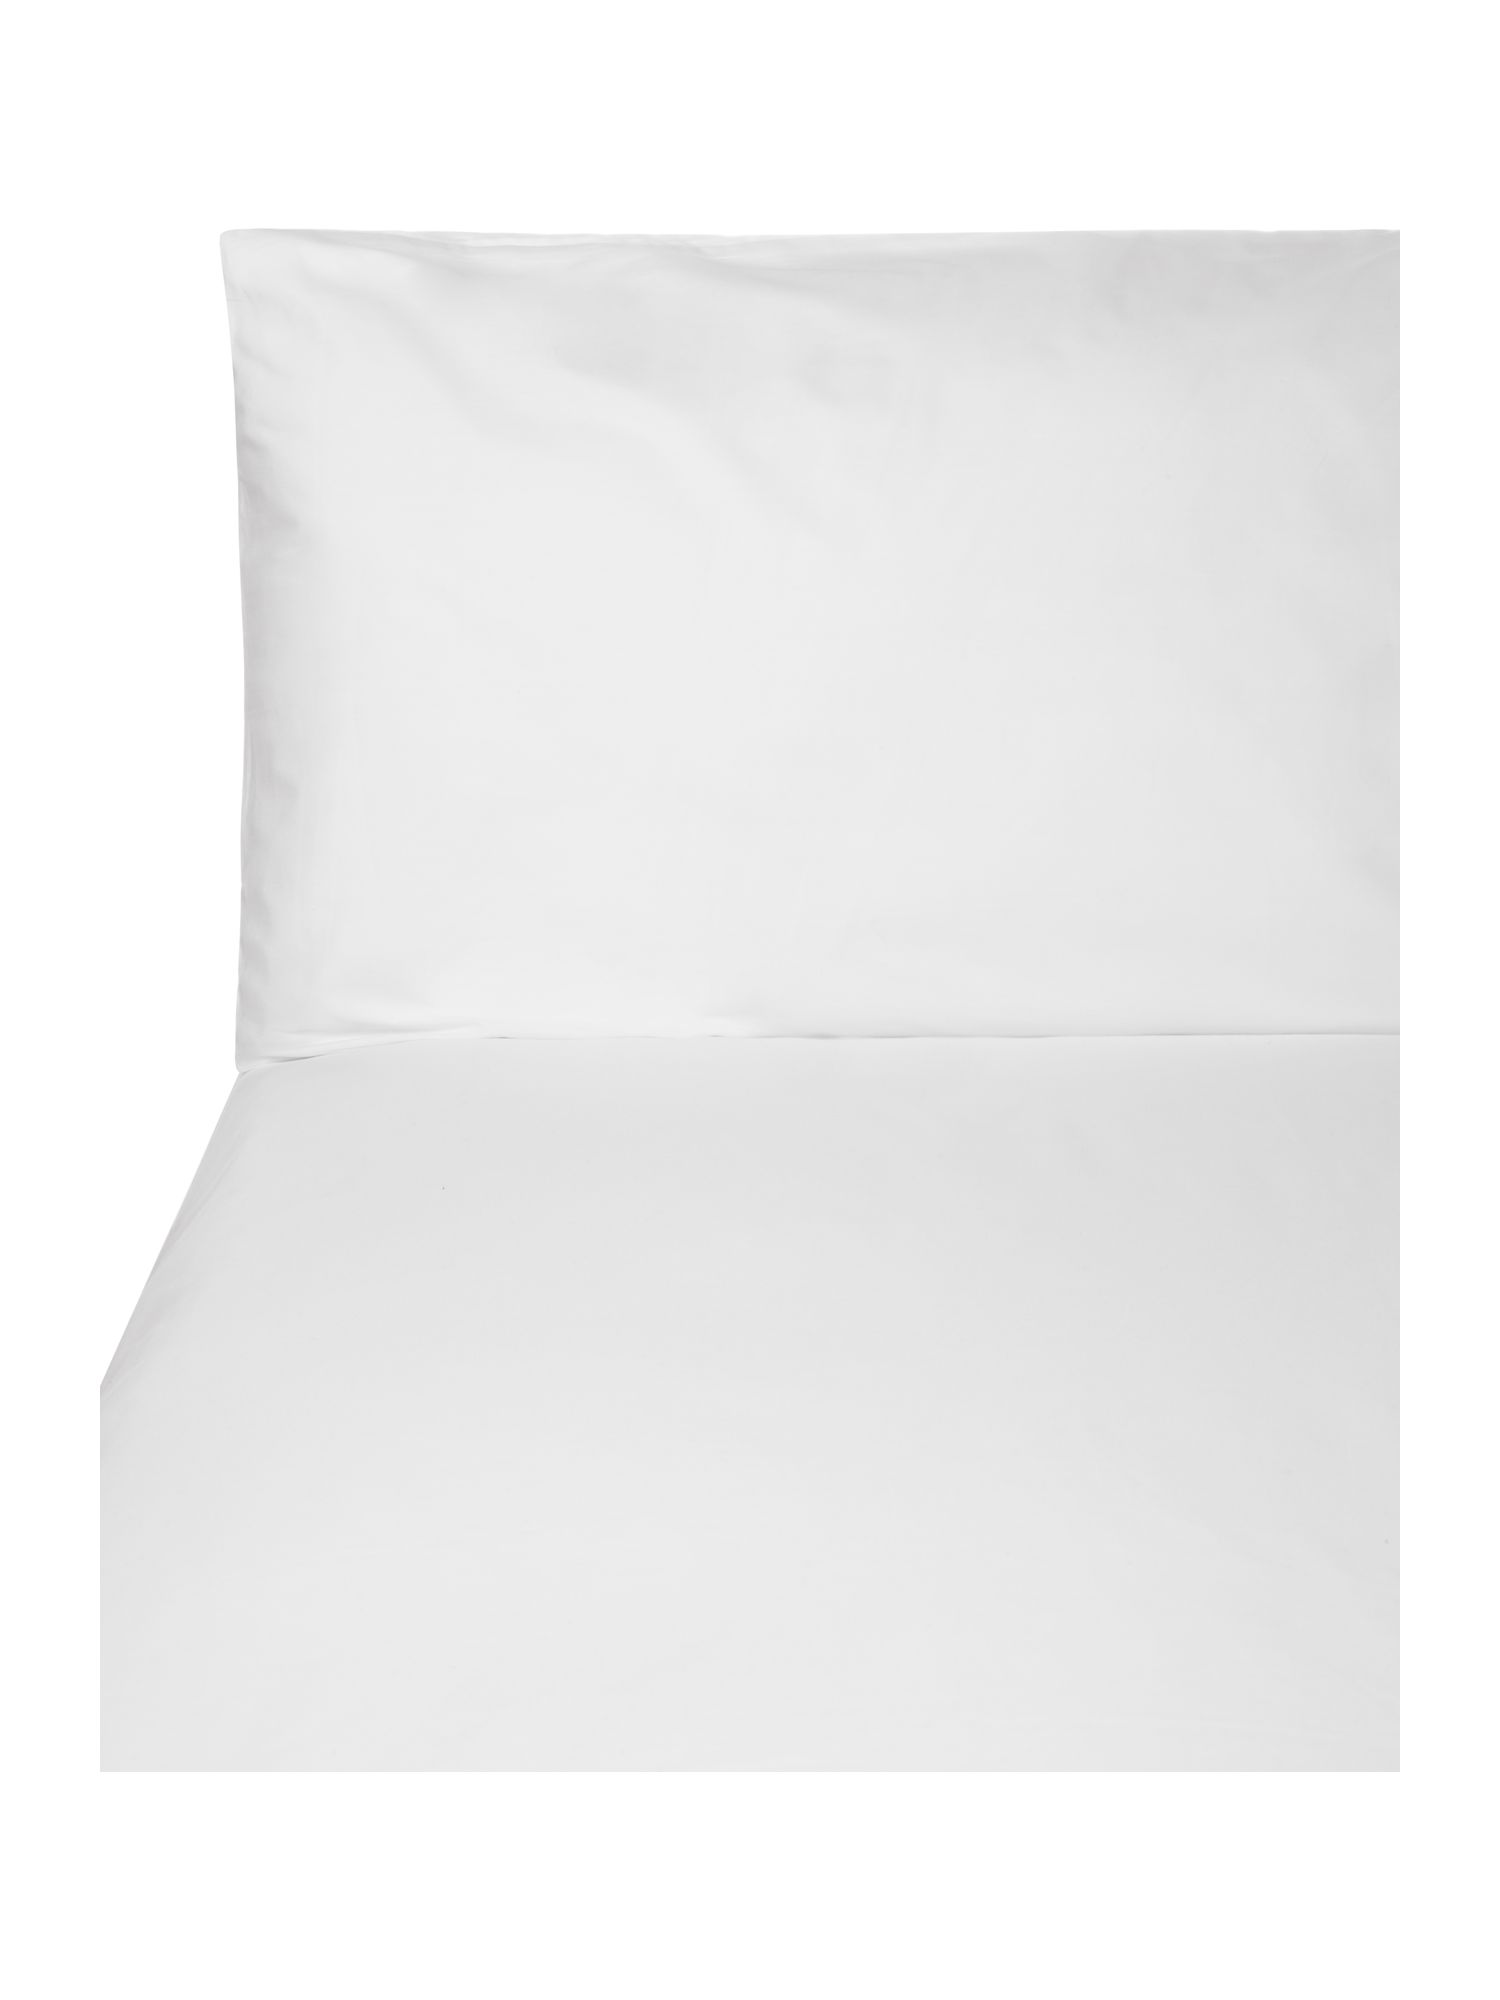 Single fitted sheet